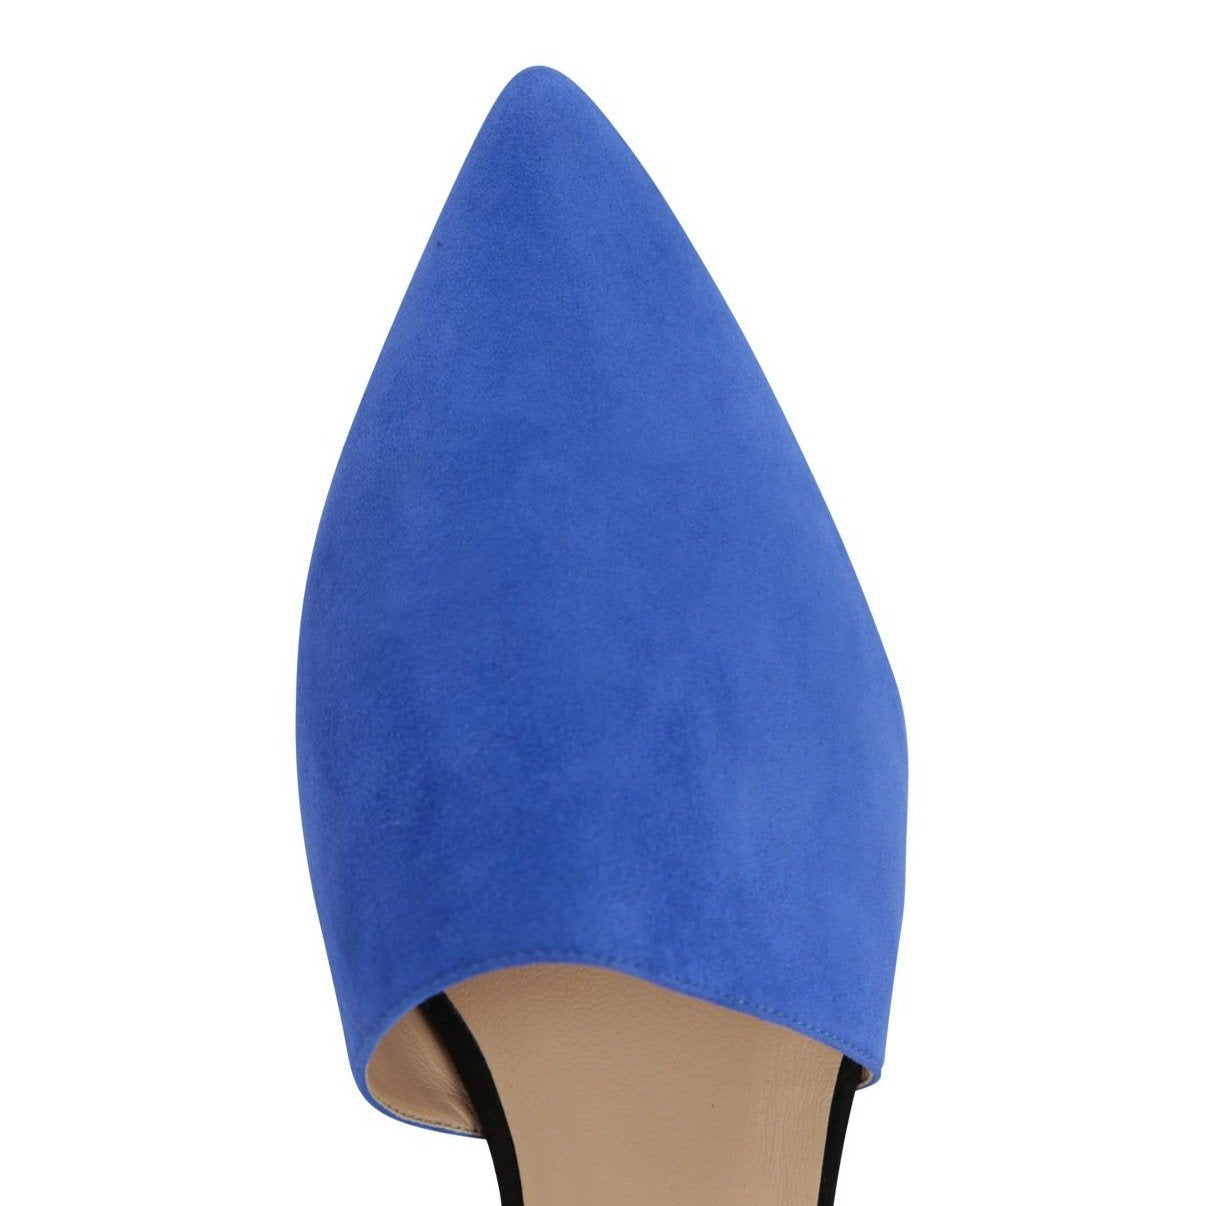 ELBA - Velukid Cobalt + Nero, VIAJIYU - Women's Hand Made Sustainable Luxury Shoes. Made in Italy. Made to Order.